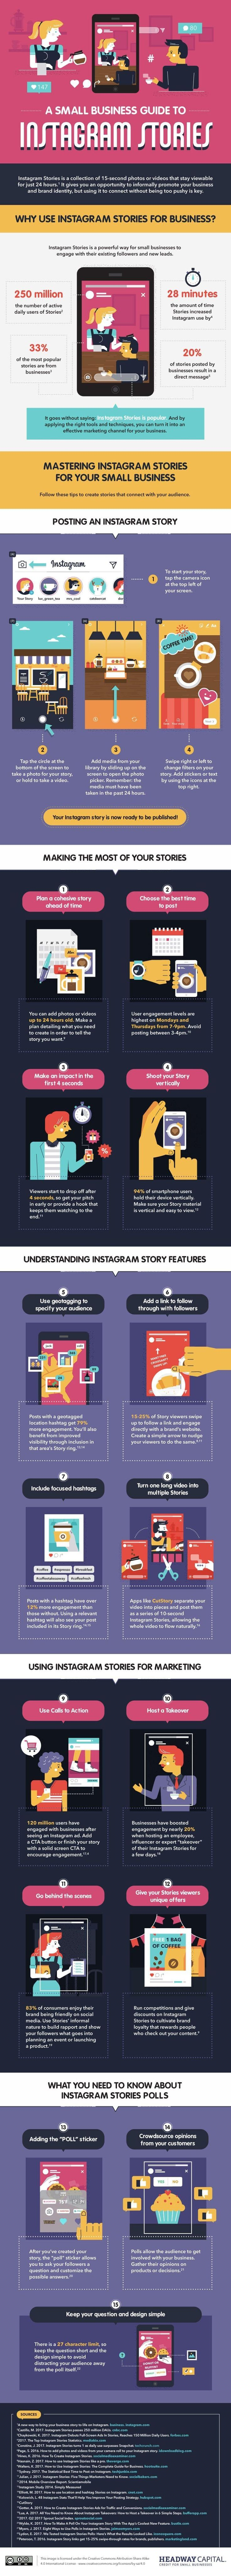 A Small Business Guide to Instagram Stories - #infographic